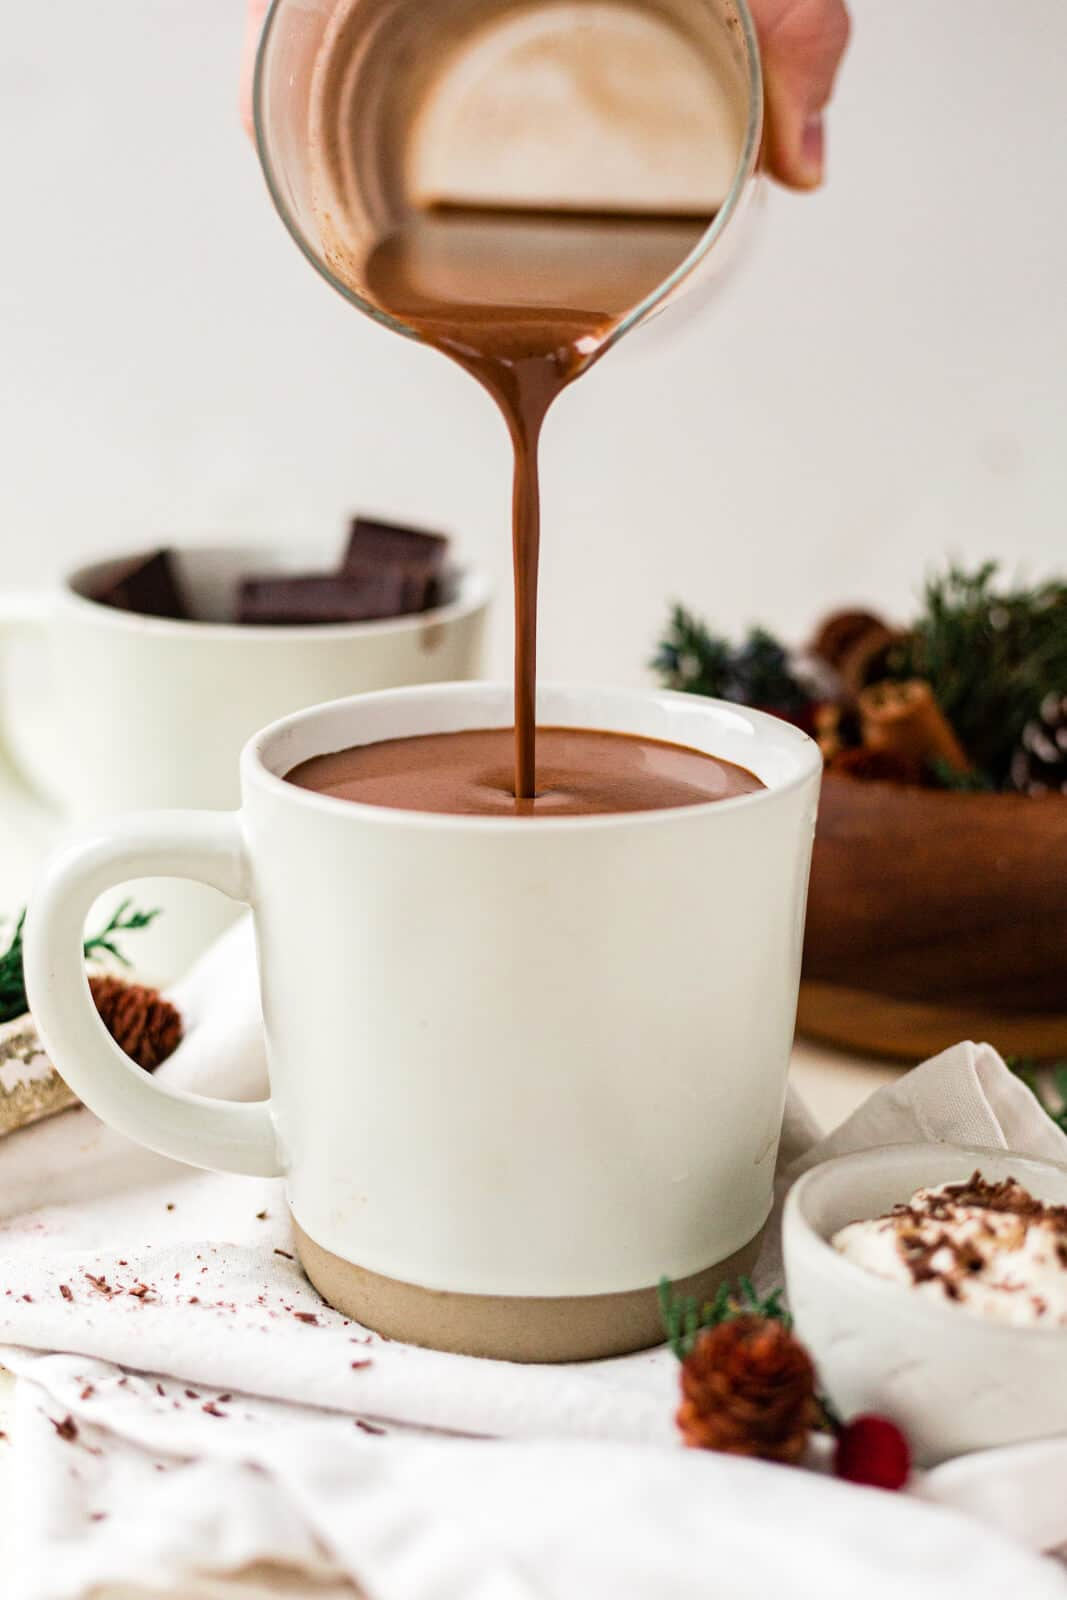 pouring thick and creamy healthy hot chocolate into a white mug with christmas greenery around it